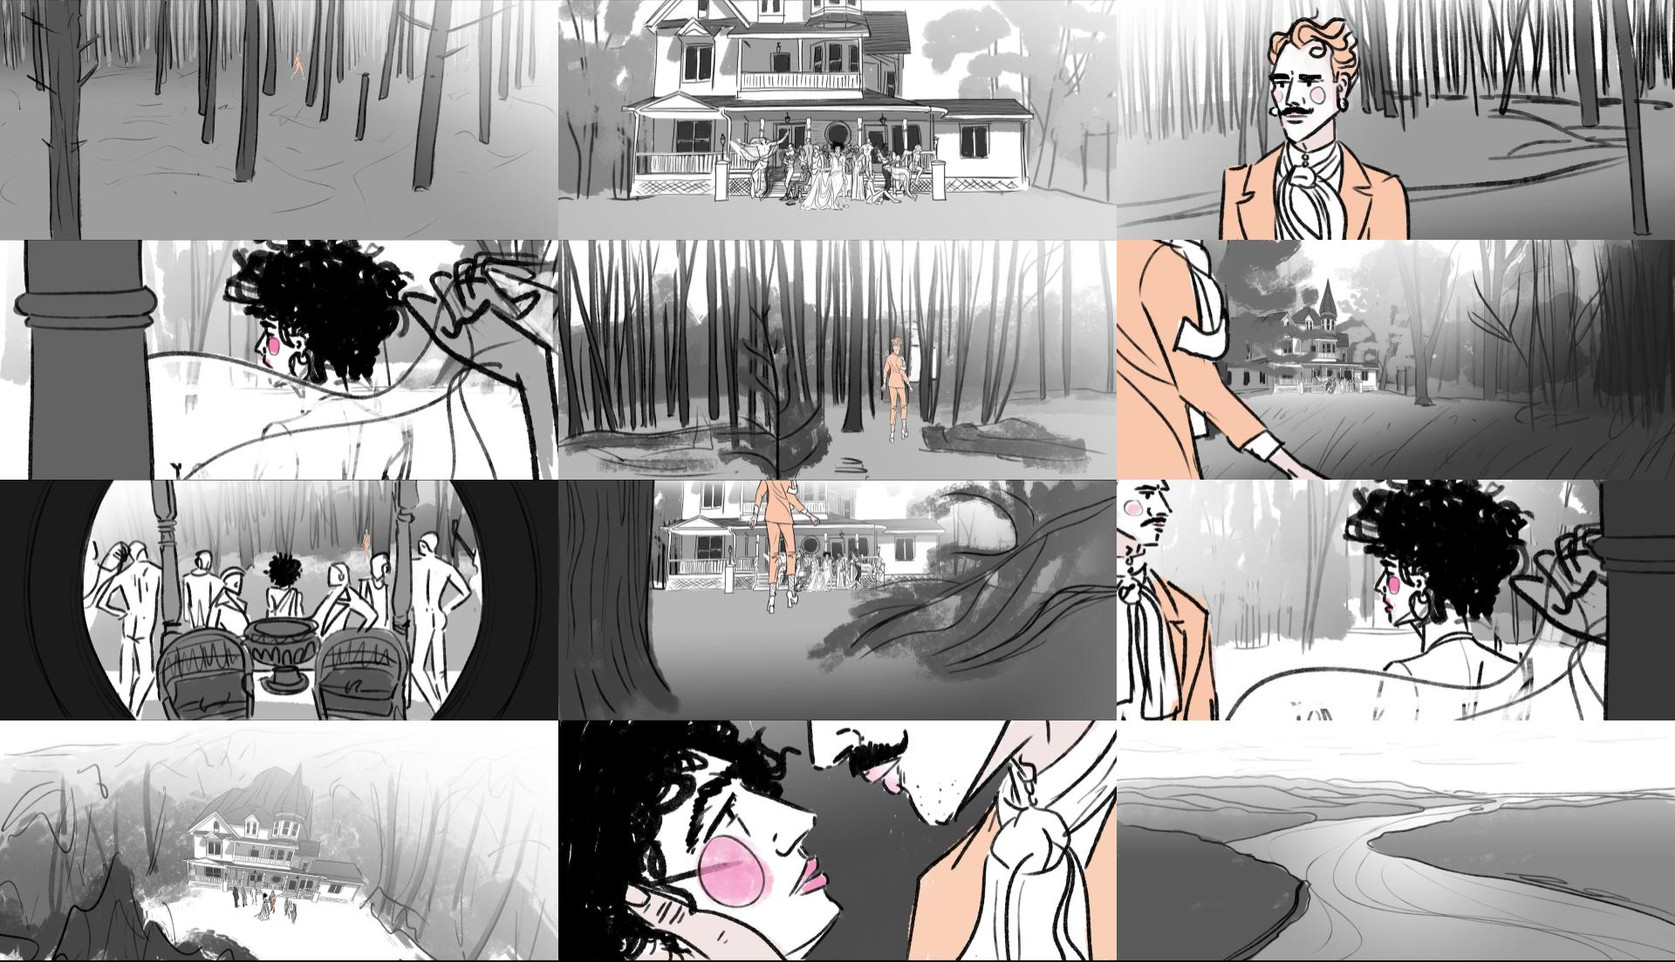 CousinJohn - The Arrival - Storyboard_10